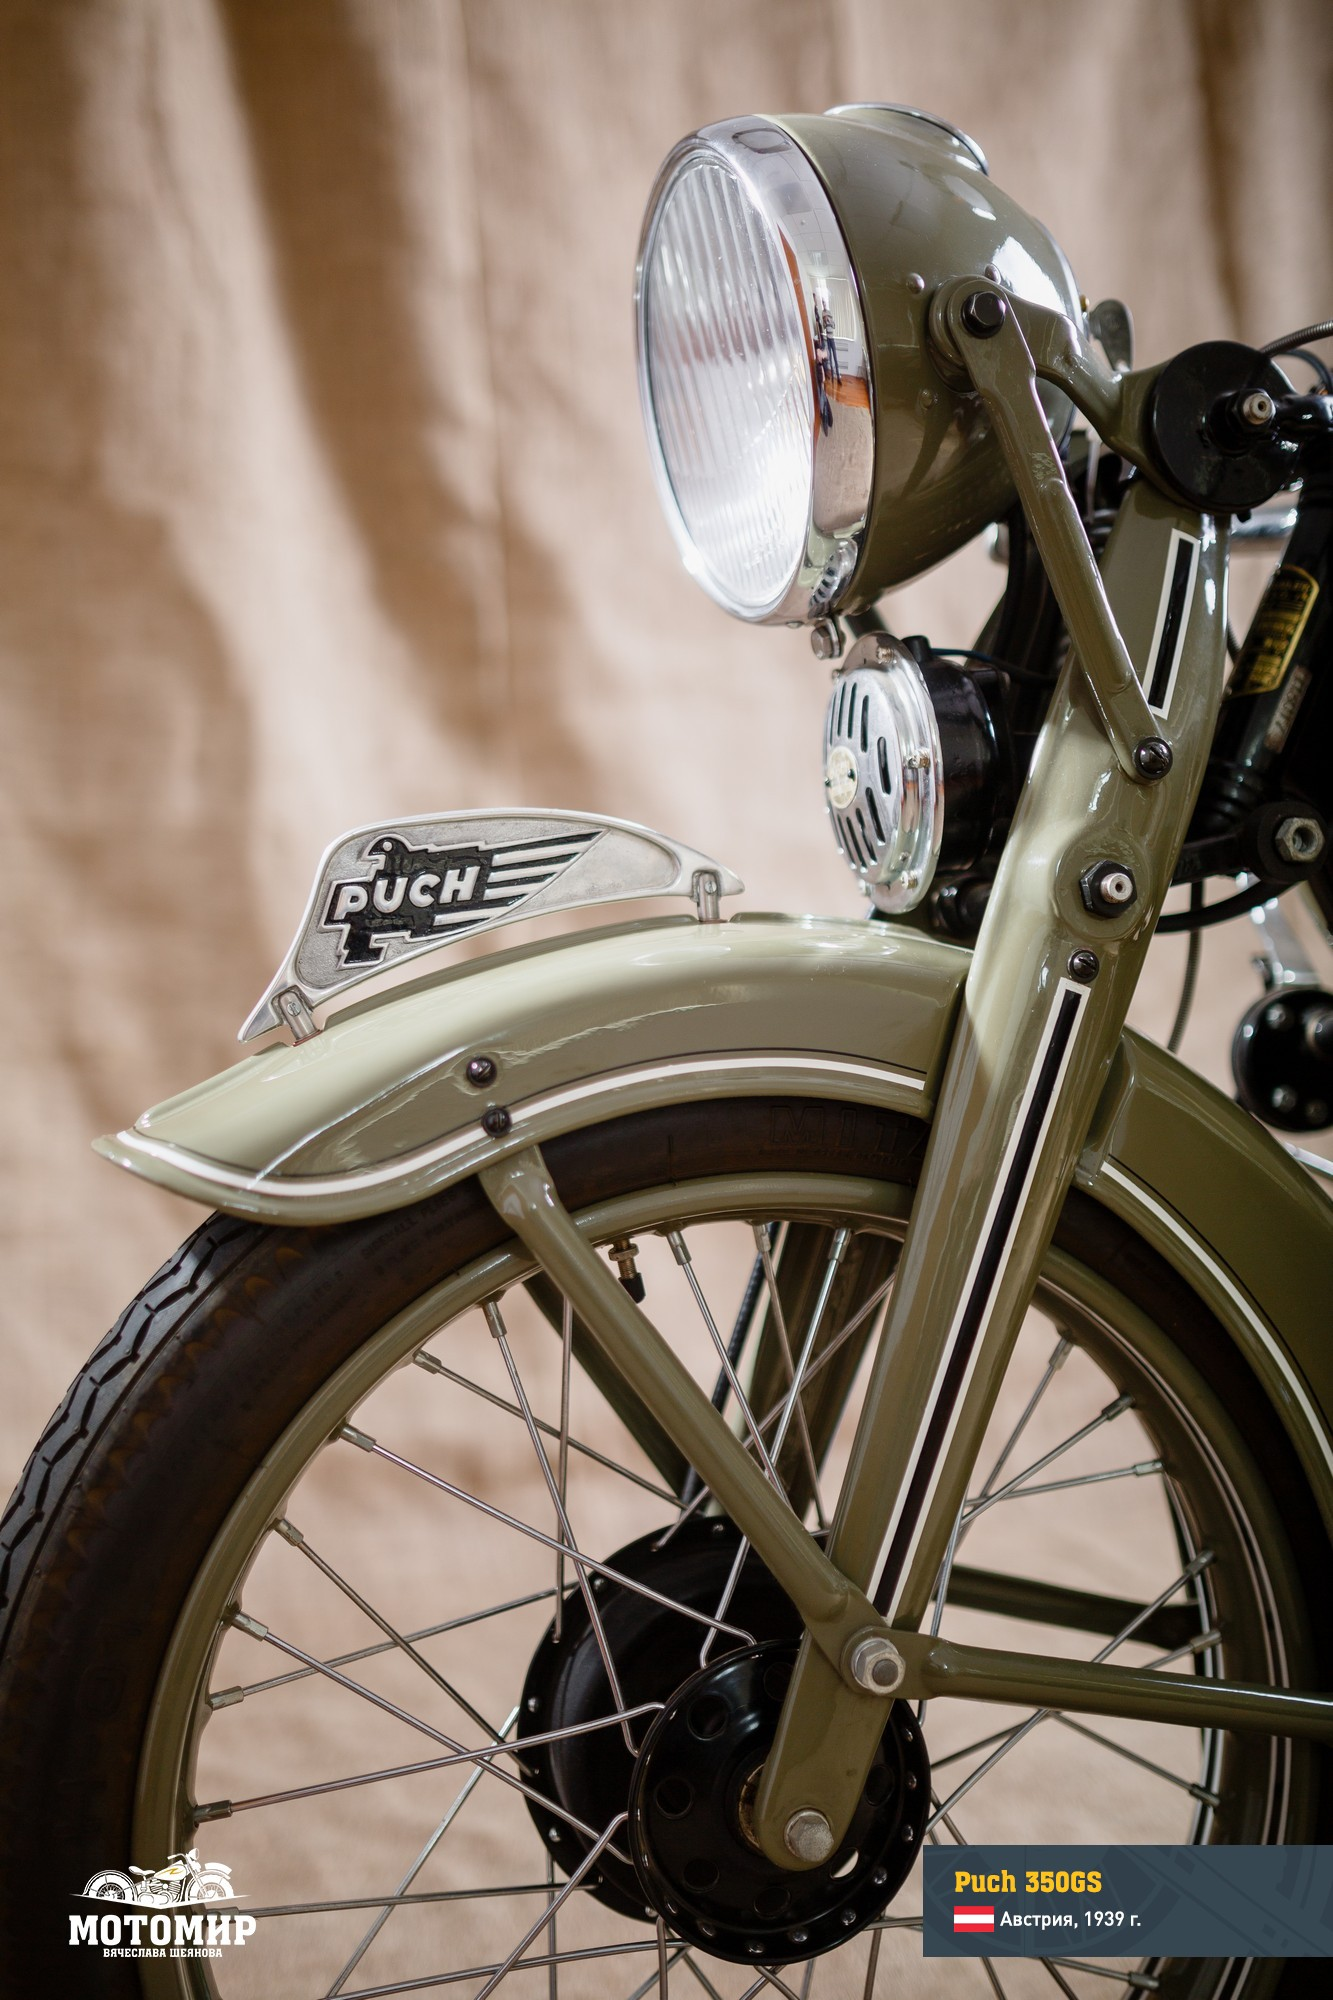 puch-350gs-201601-web-31